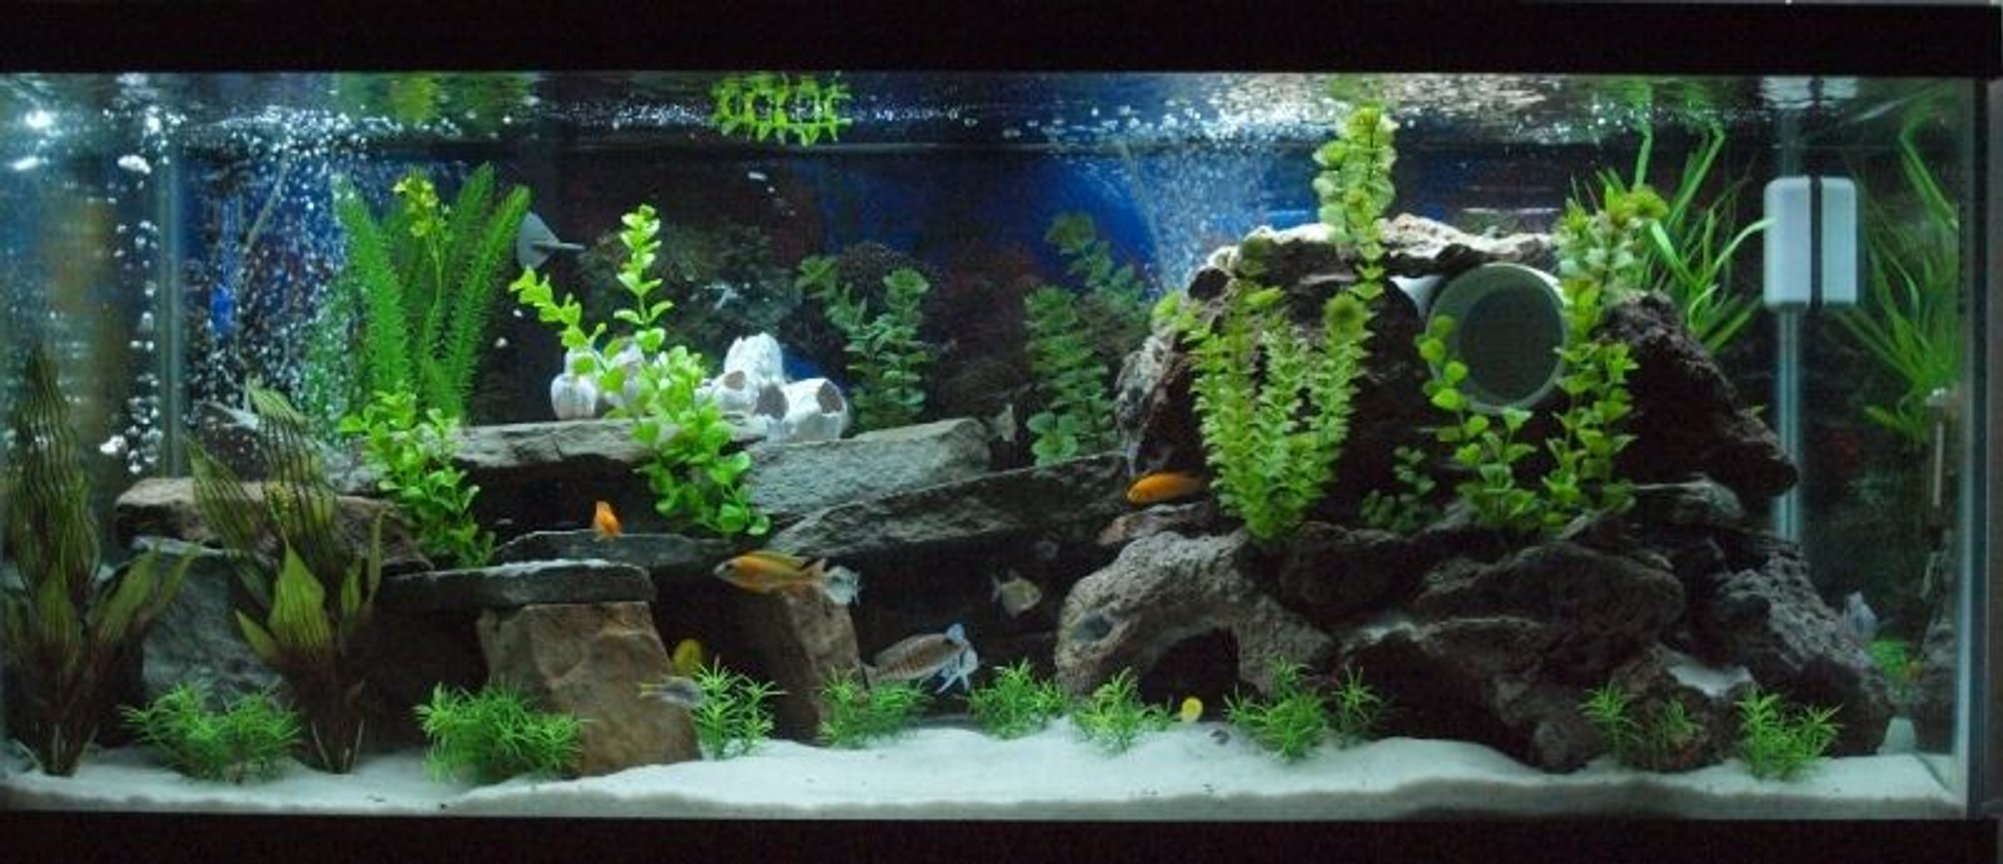 80 gallons freshwater fish tank (mostly fish and non-living decorations) - My Mixed African Cichlid Tank!!!